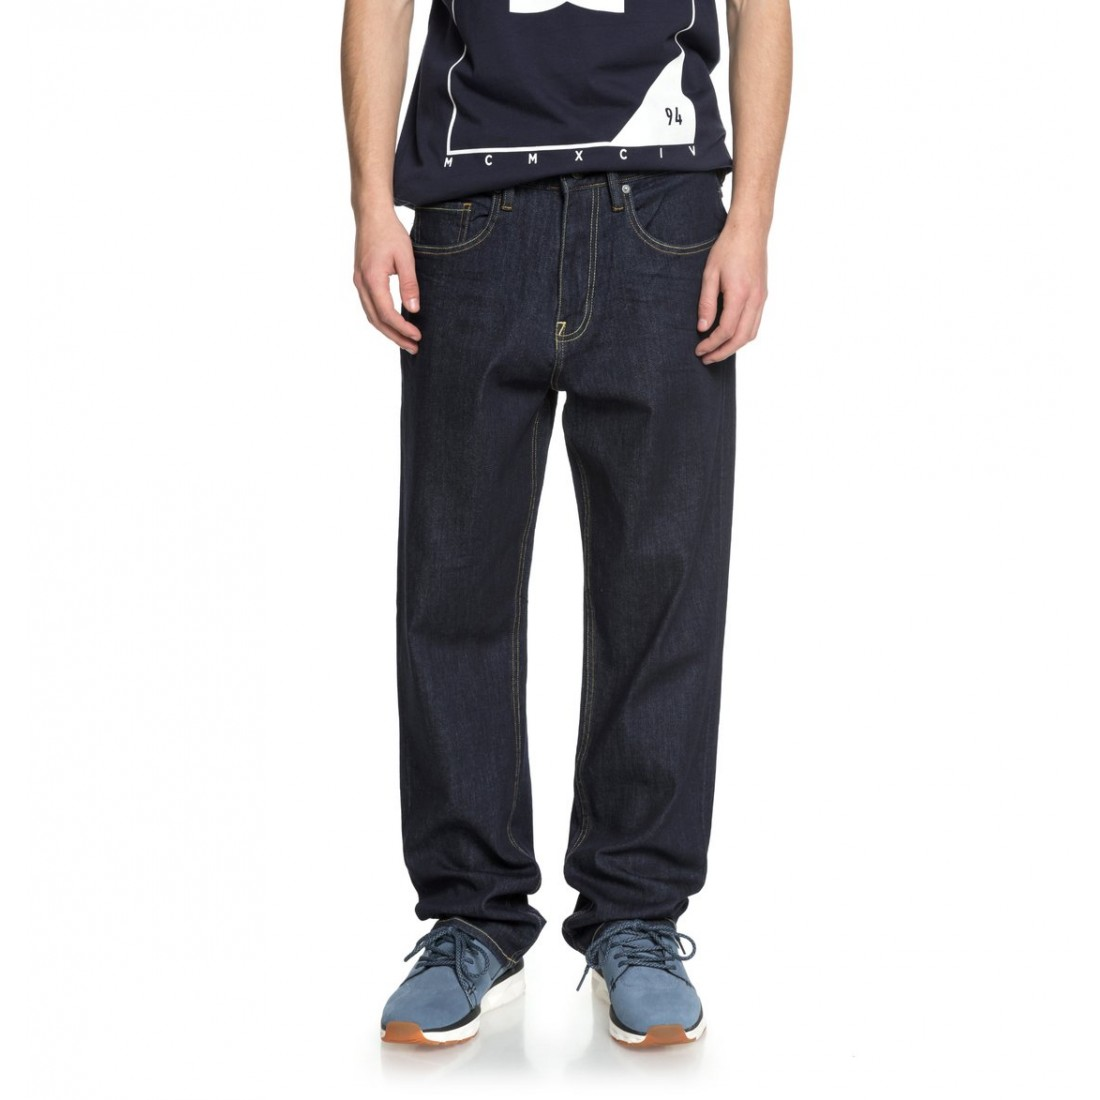 JEAN DC WORKER RELAXED indigo rinsed